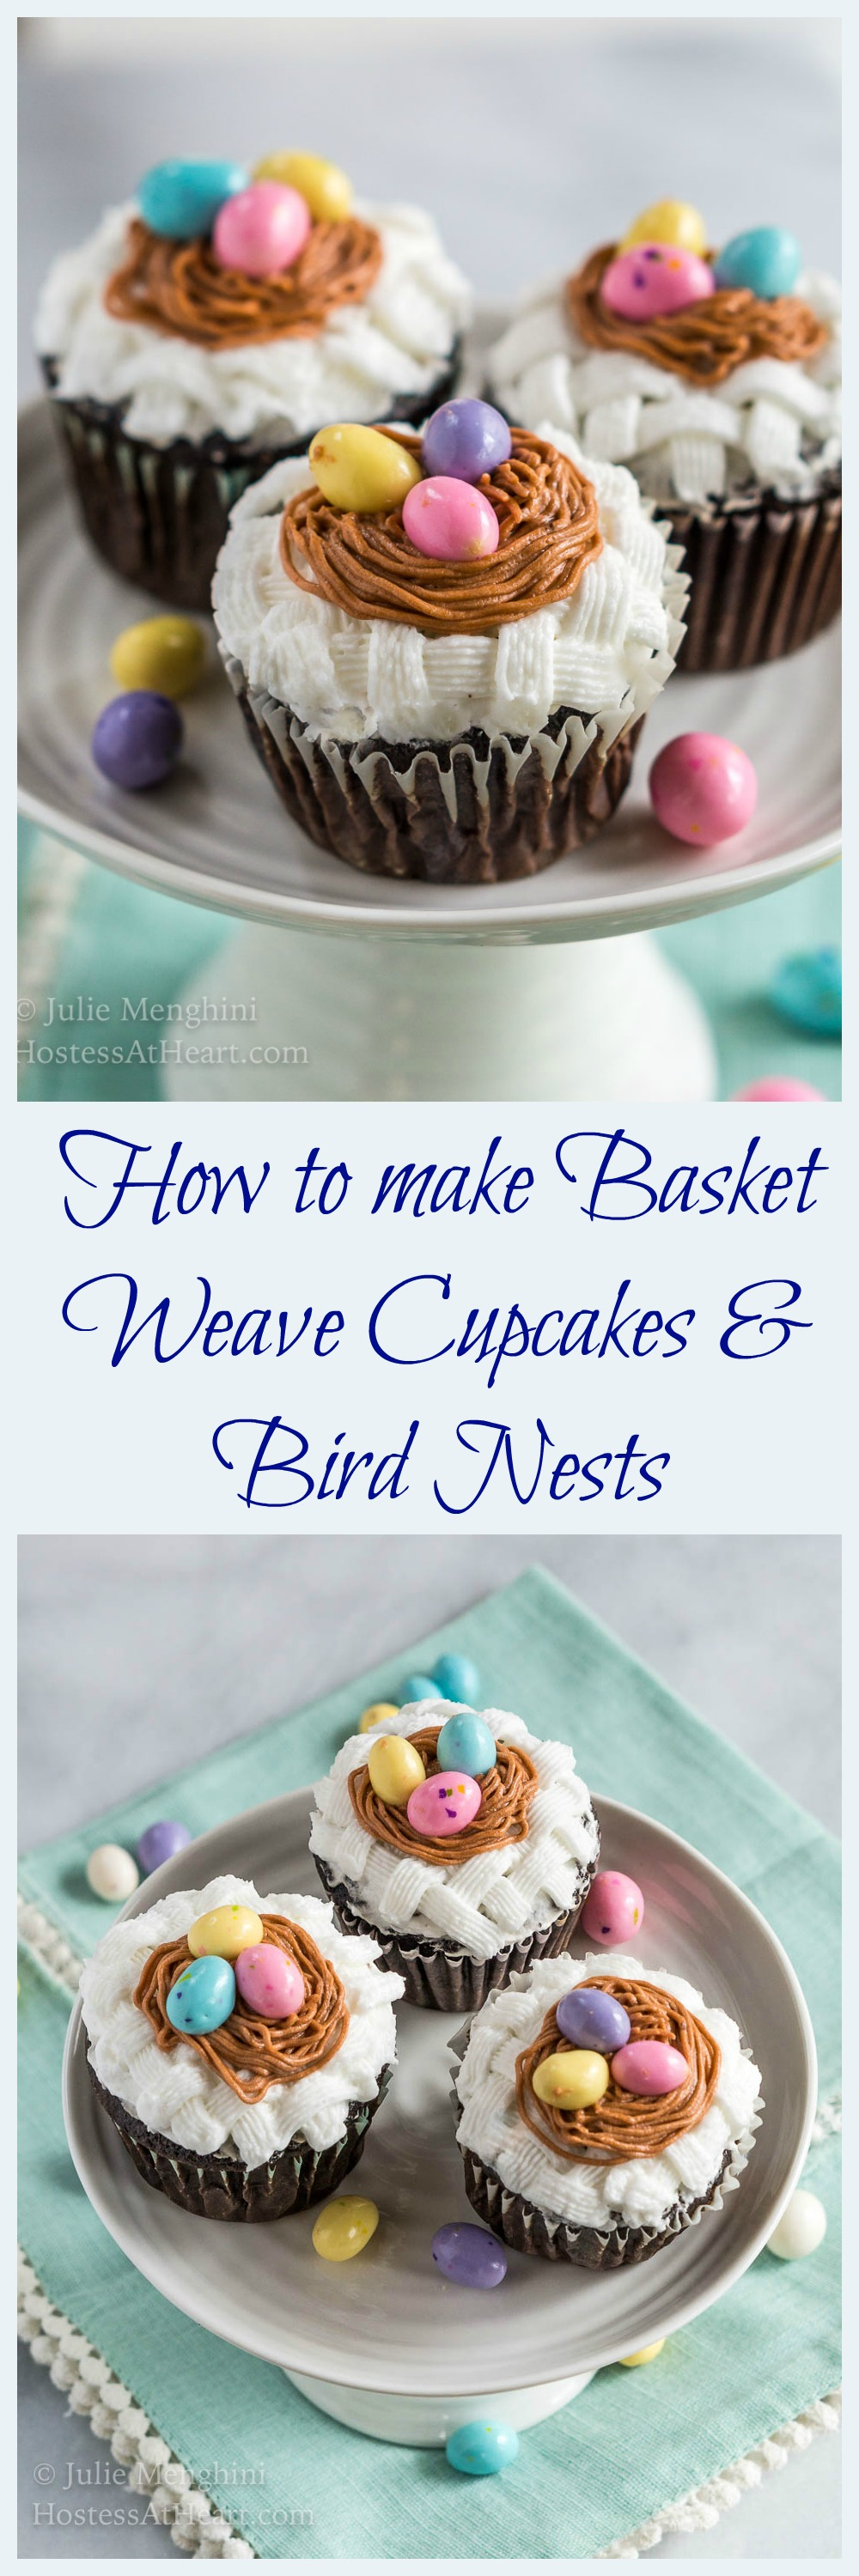 Learning how to create basket weave cupcakes with bird nests is not difficult.  It only uses two decorating tips and is perfect for Spring or Easter. | HostessAtHeart.com #cakedecorating #Easter #cake | Easter Cupcakes | Easter Cake Decoration | Cupcake Decorating